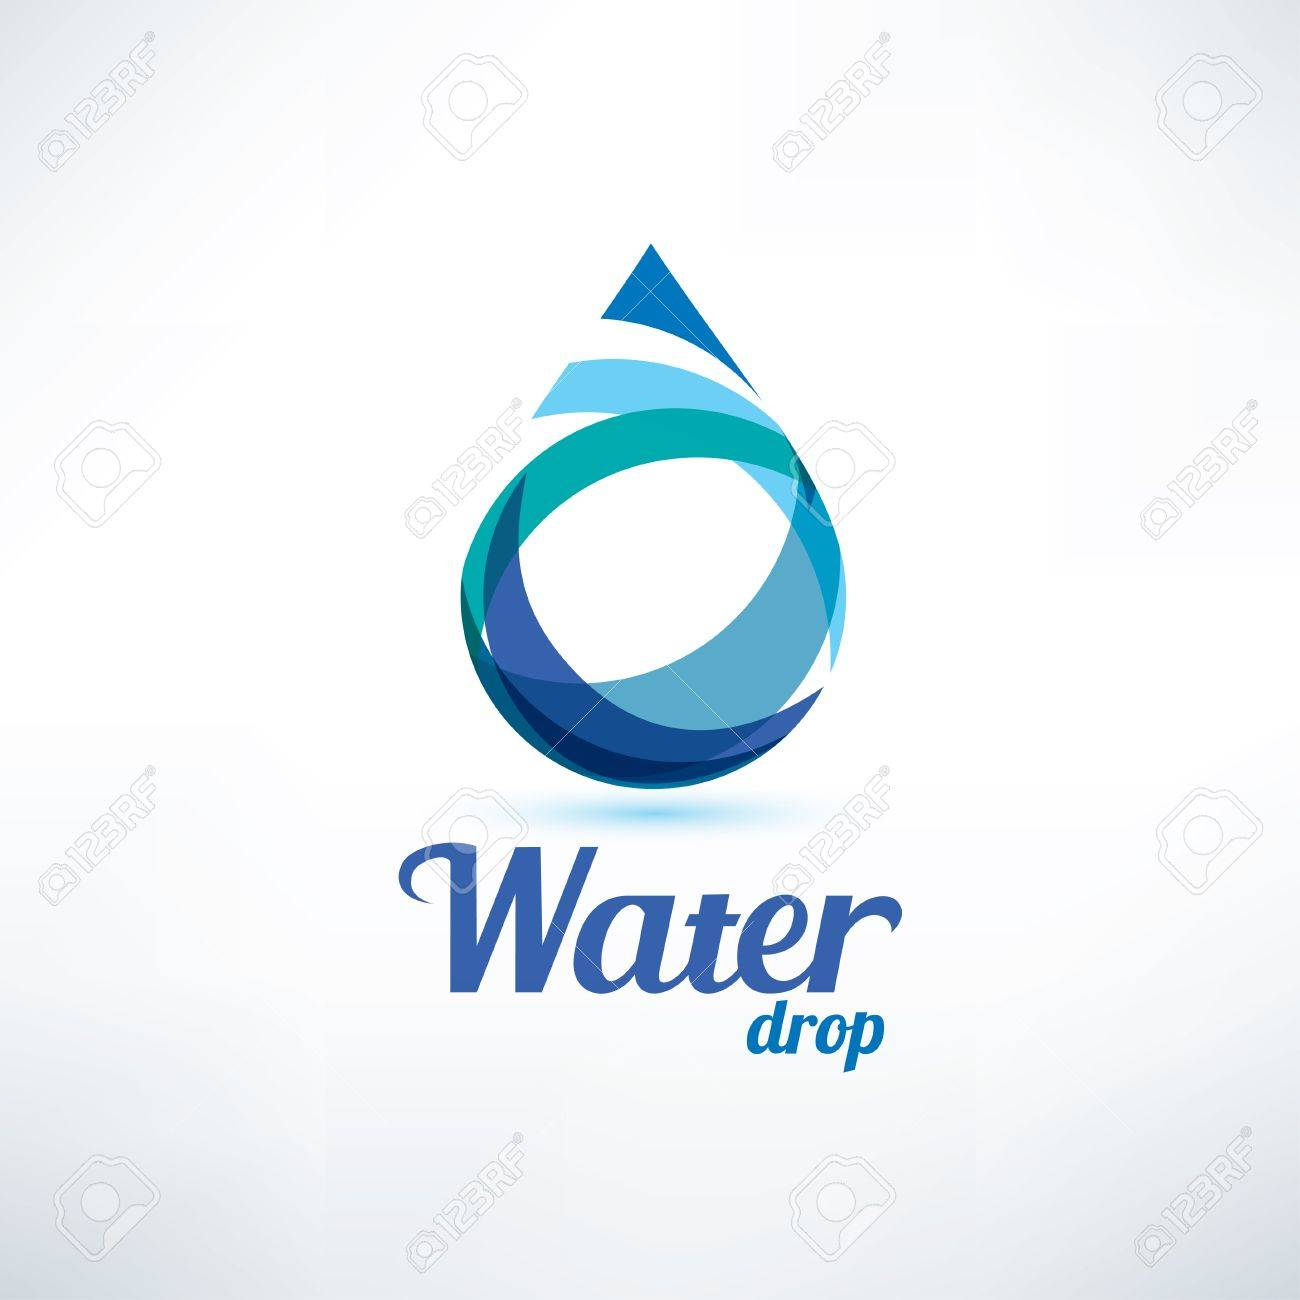 water drop logo template, ecology and environment concept - 68890600